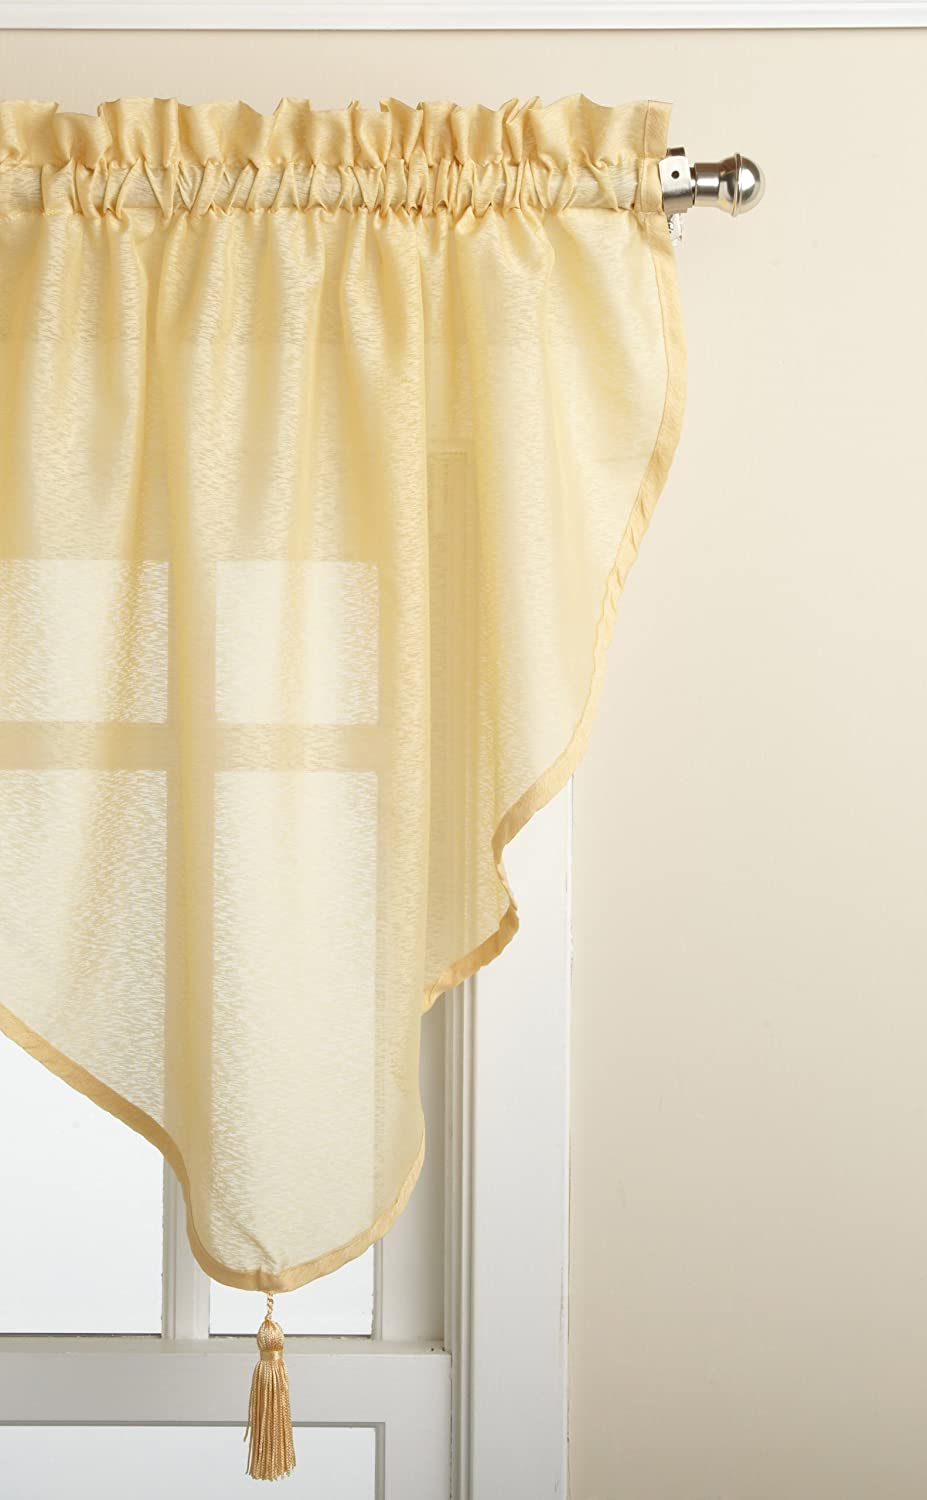 LORRAINE HOME FASHIONS Reverie 40-inch x 25-inch Ascot Valance, Gold